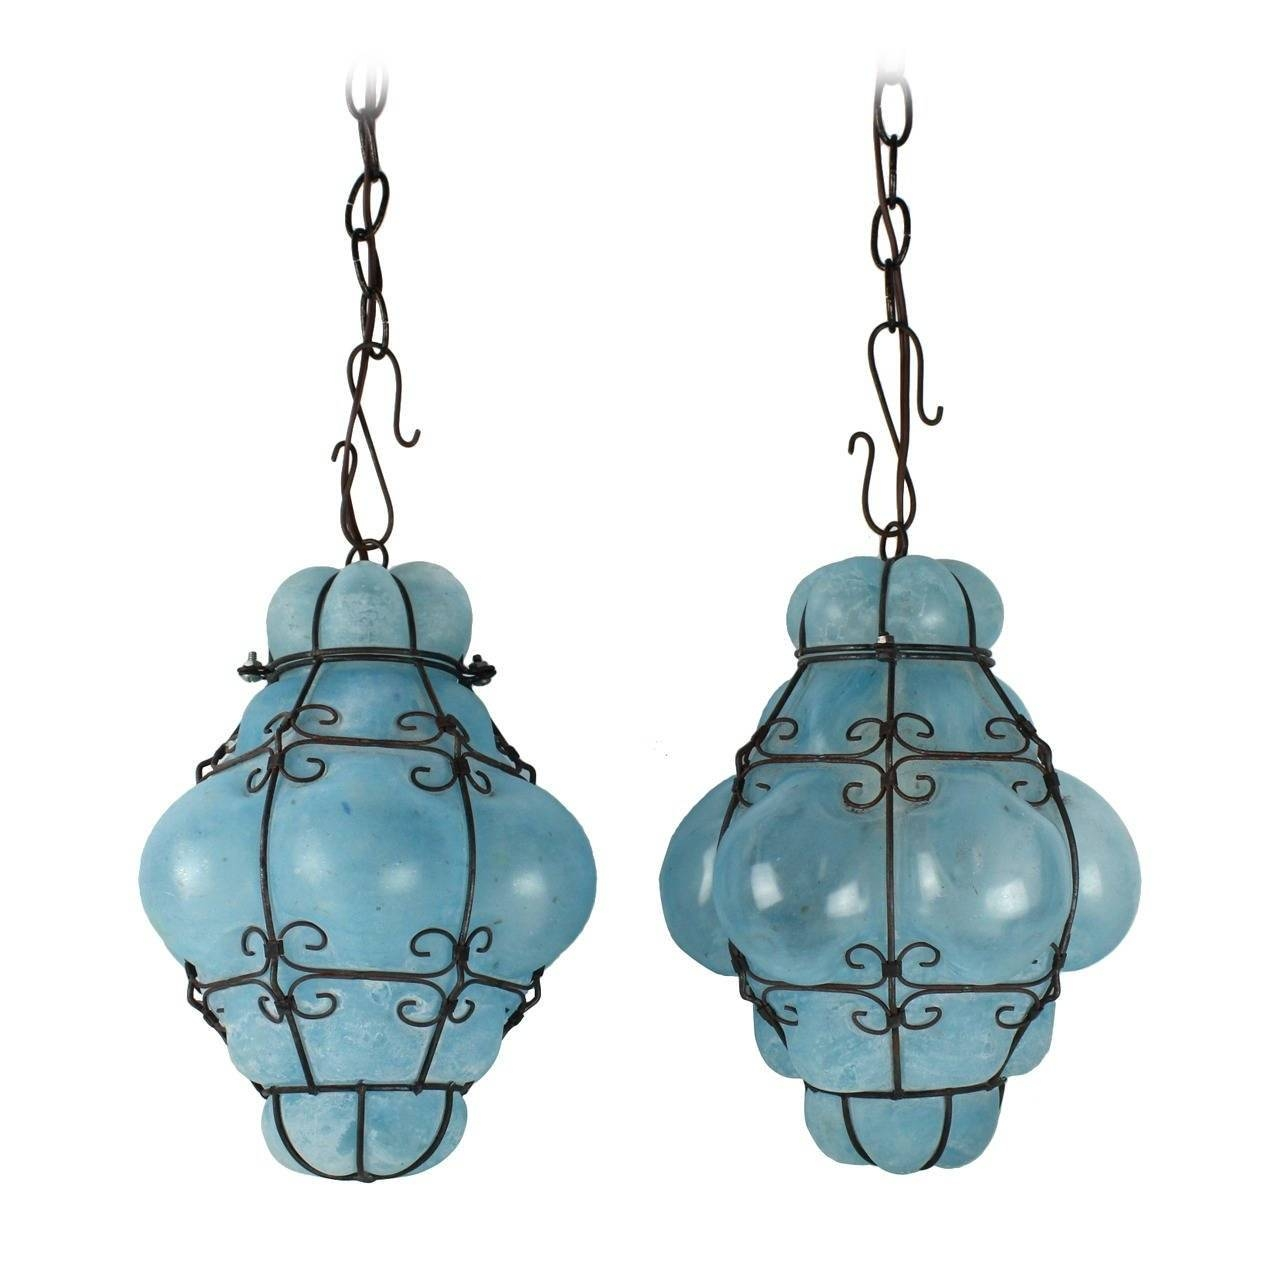 Vintage Seguso Murano Blue Glass Cage Pendant Lights At 1Stdibs with regard to Turquoise Blue Glass Pendant Lights (Image 15 of 15)